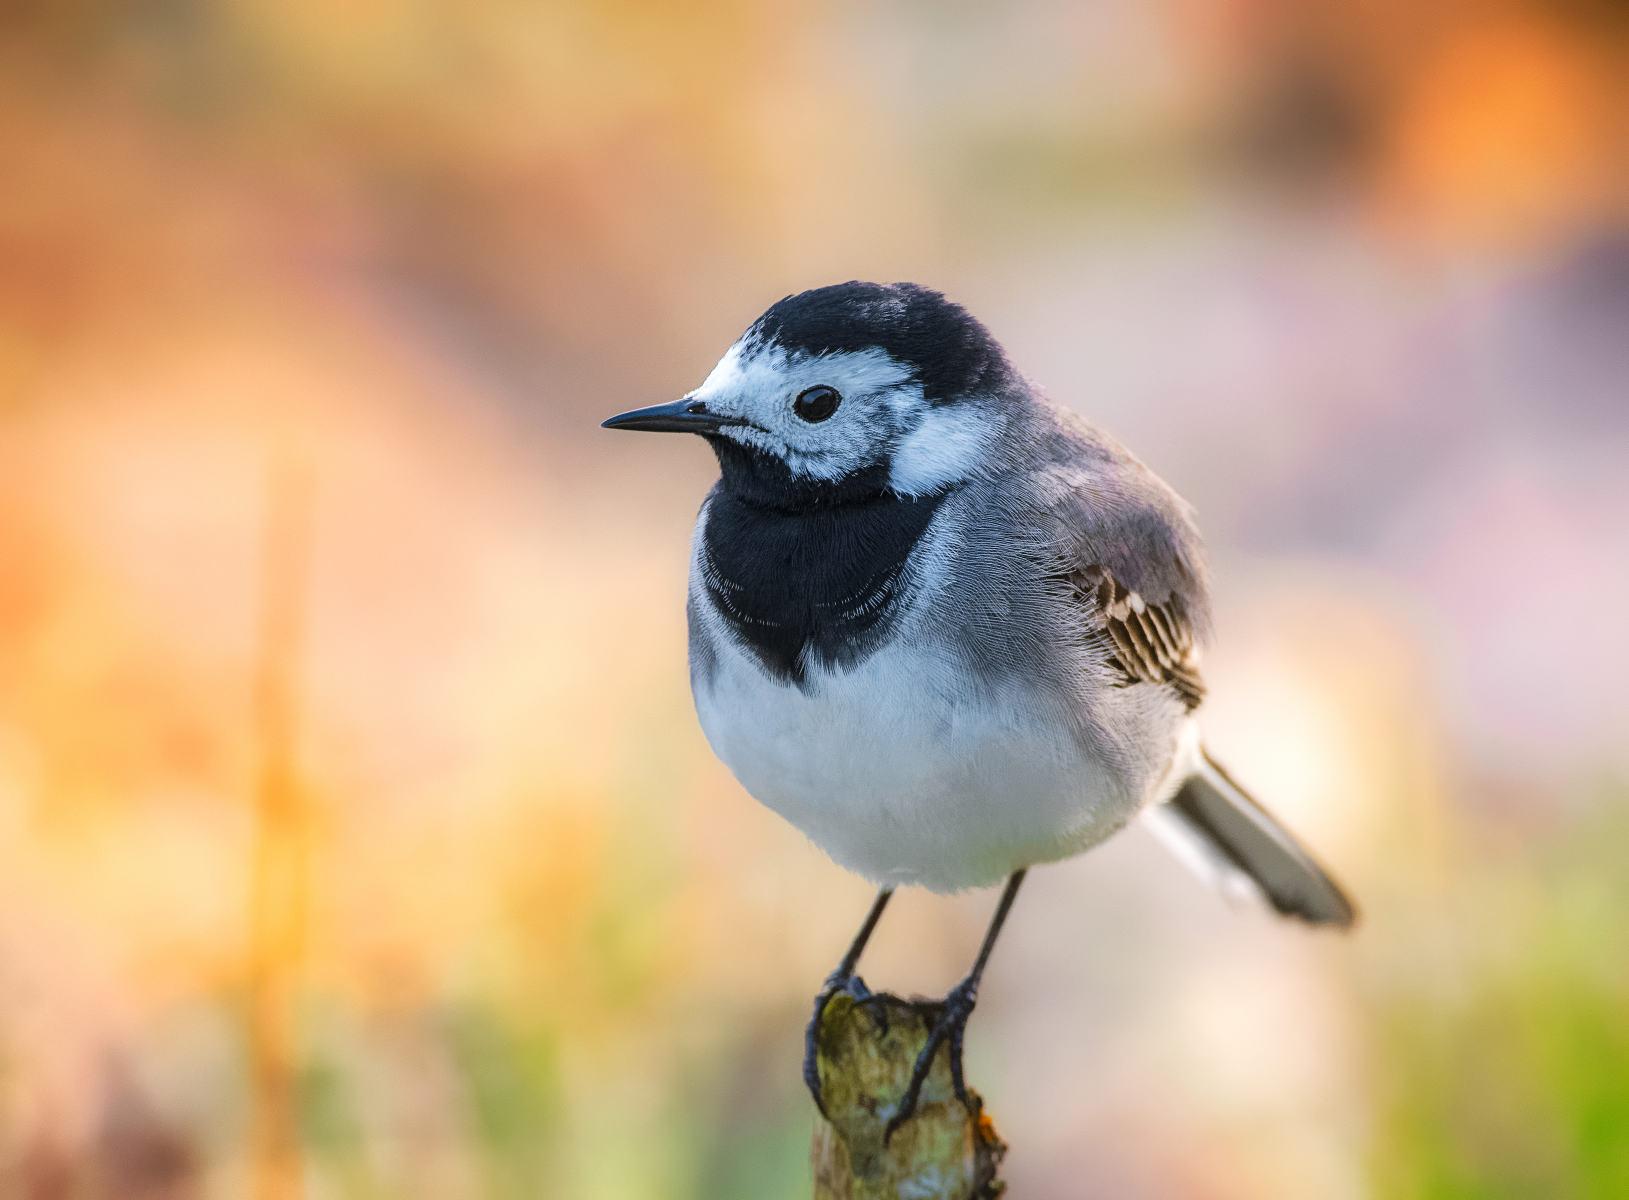 white wagtail posing on a stalk